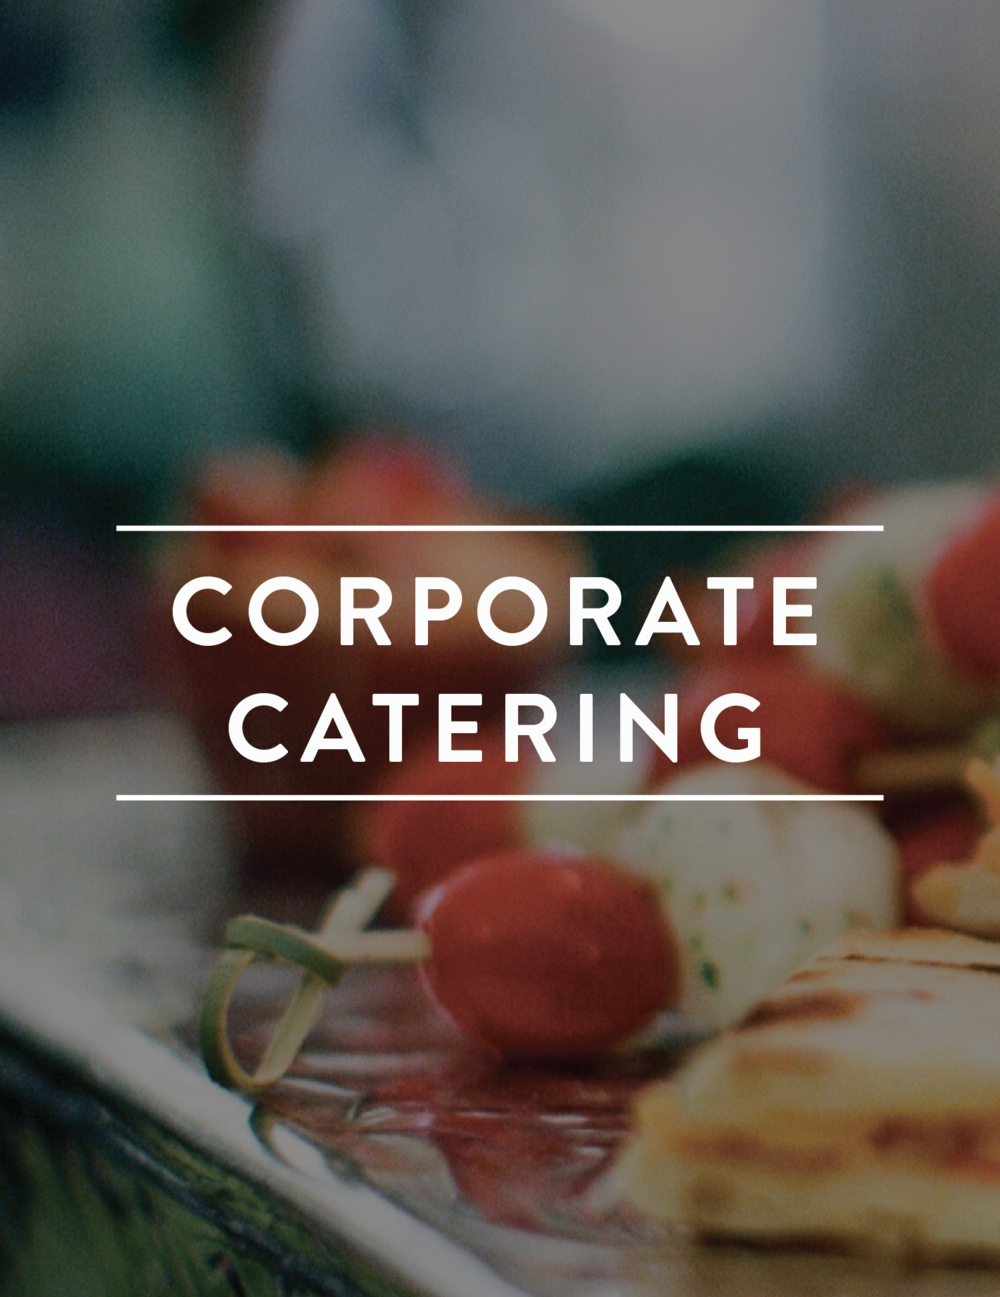 corporate event daily lunches breakfasts open houses grand openings seminars banquets and receptions we can do it all